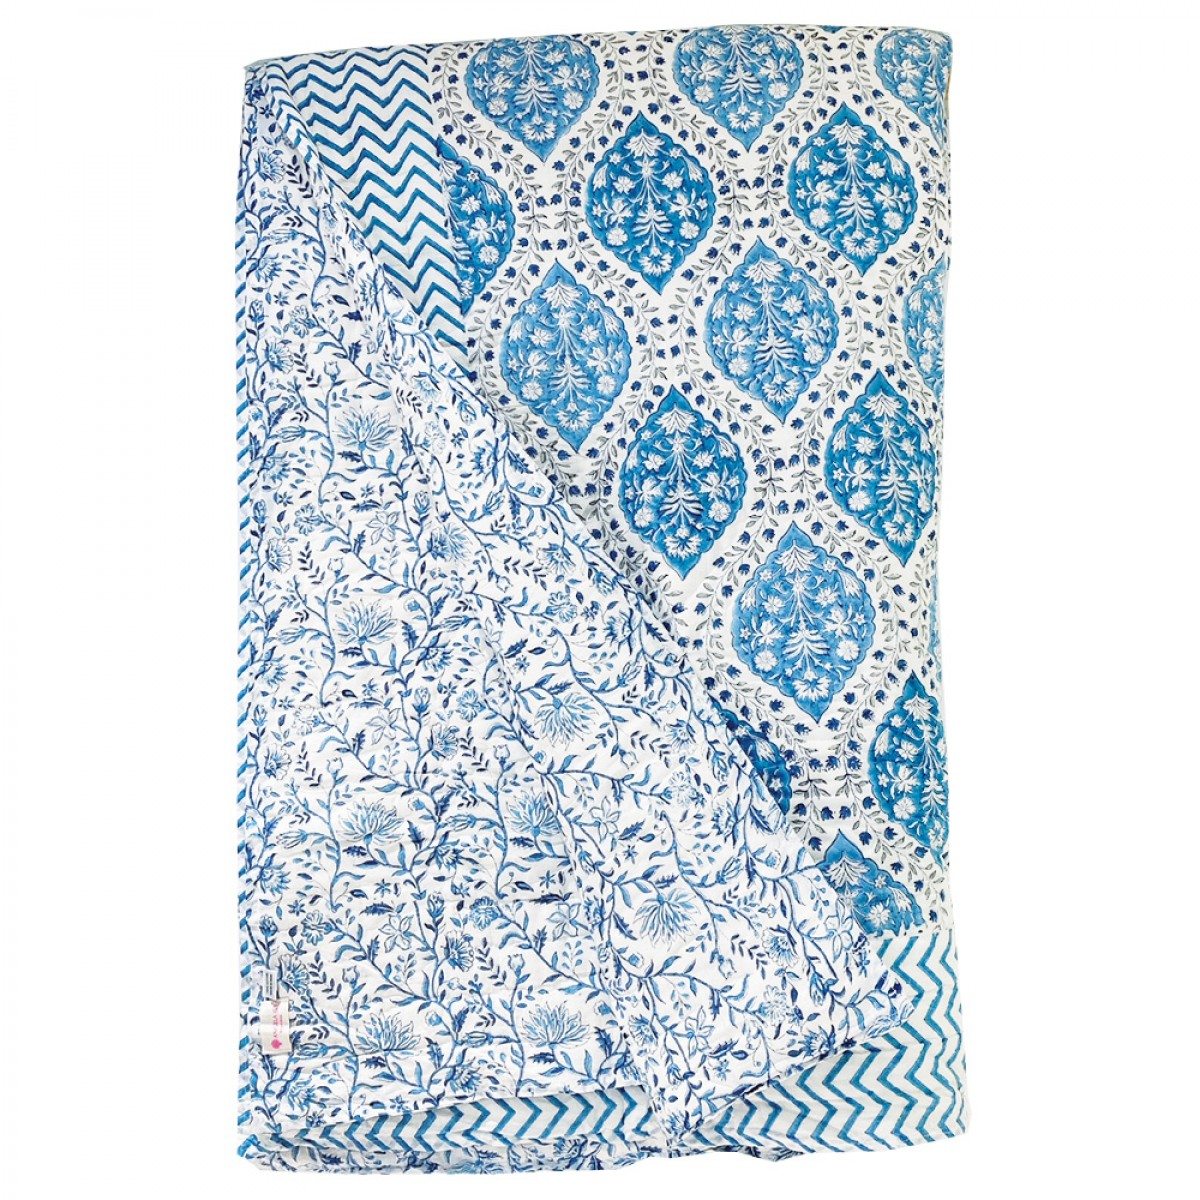 100% Cotton Block Printed Quilts - Blue